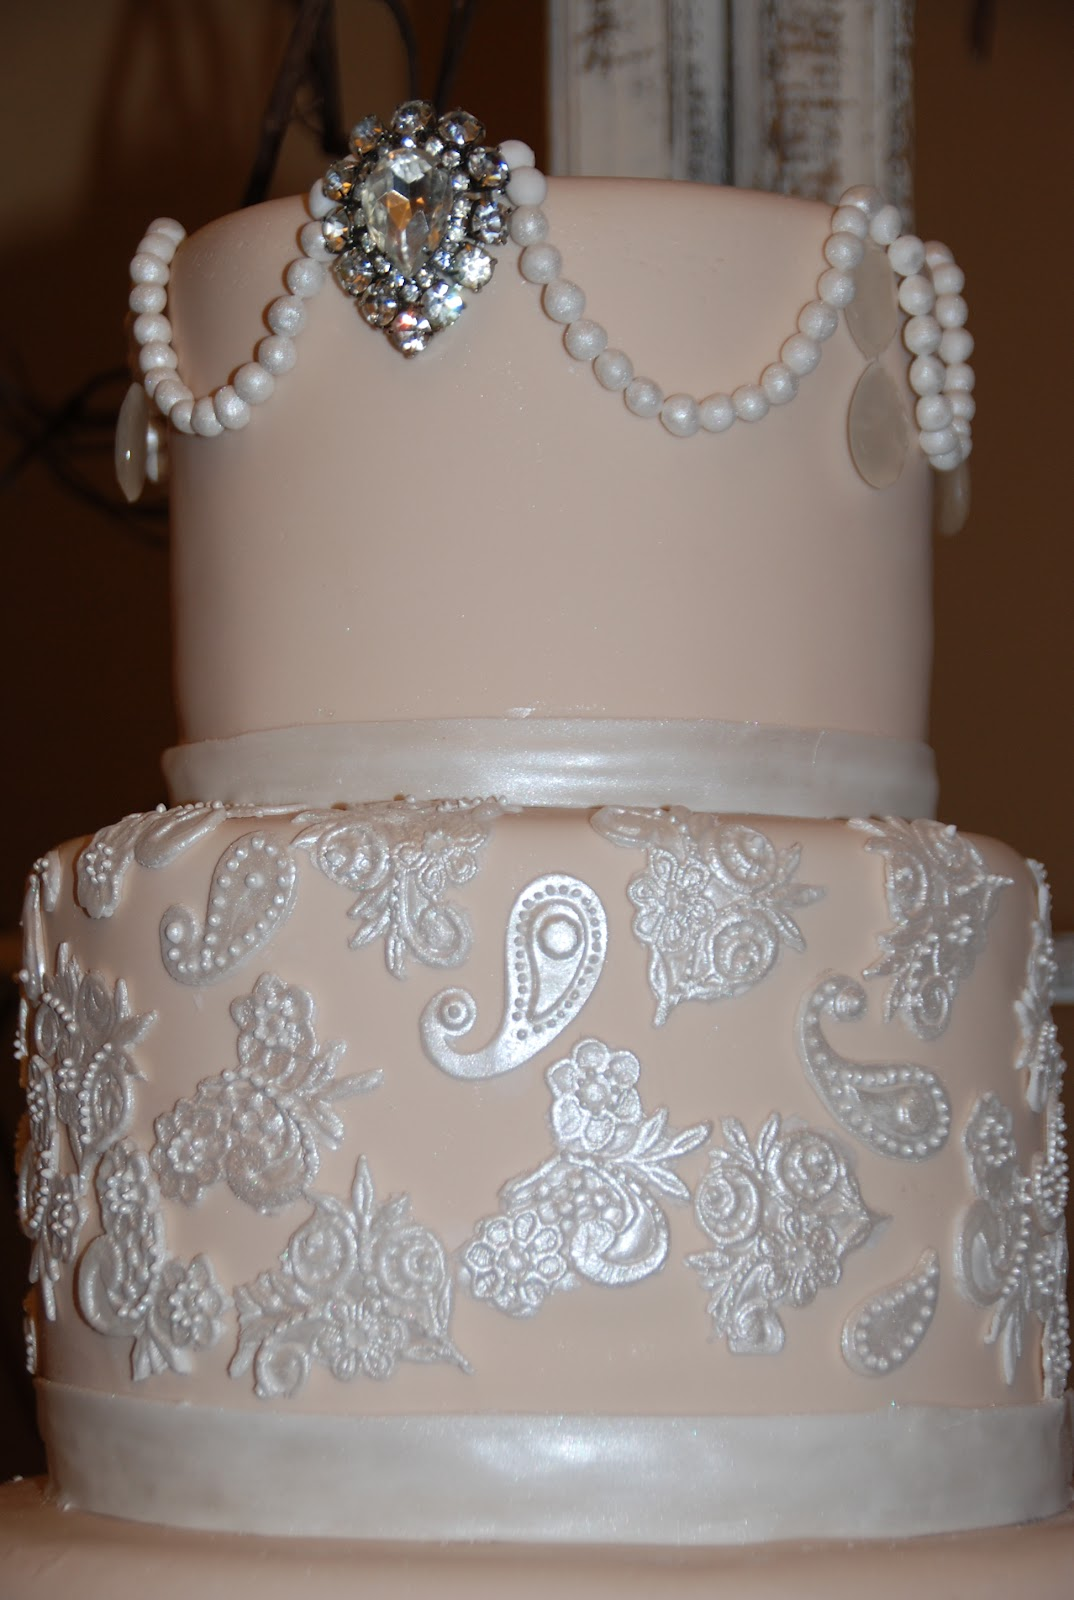 Wendy Woo Cakes A Country Shabby Chic Wedding Cake